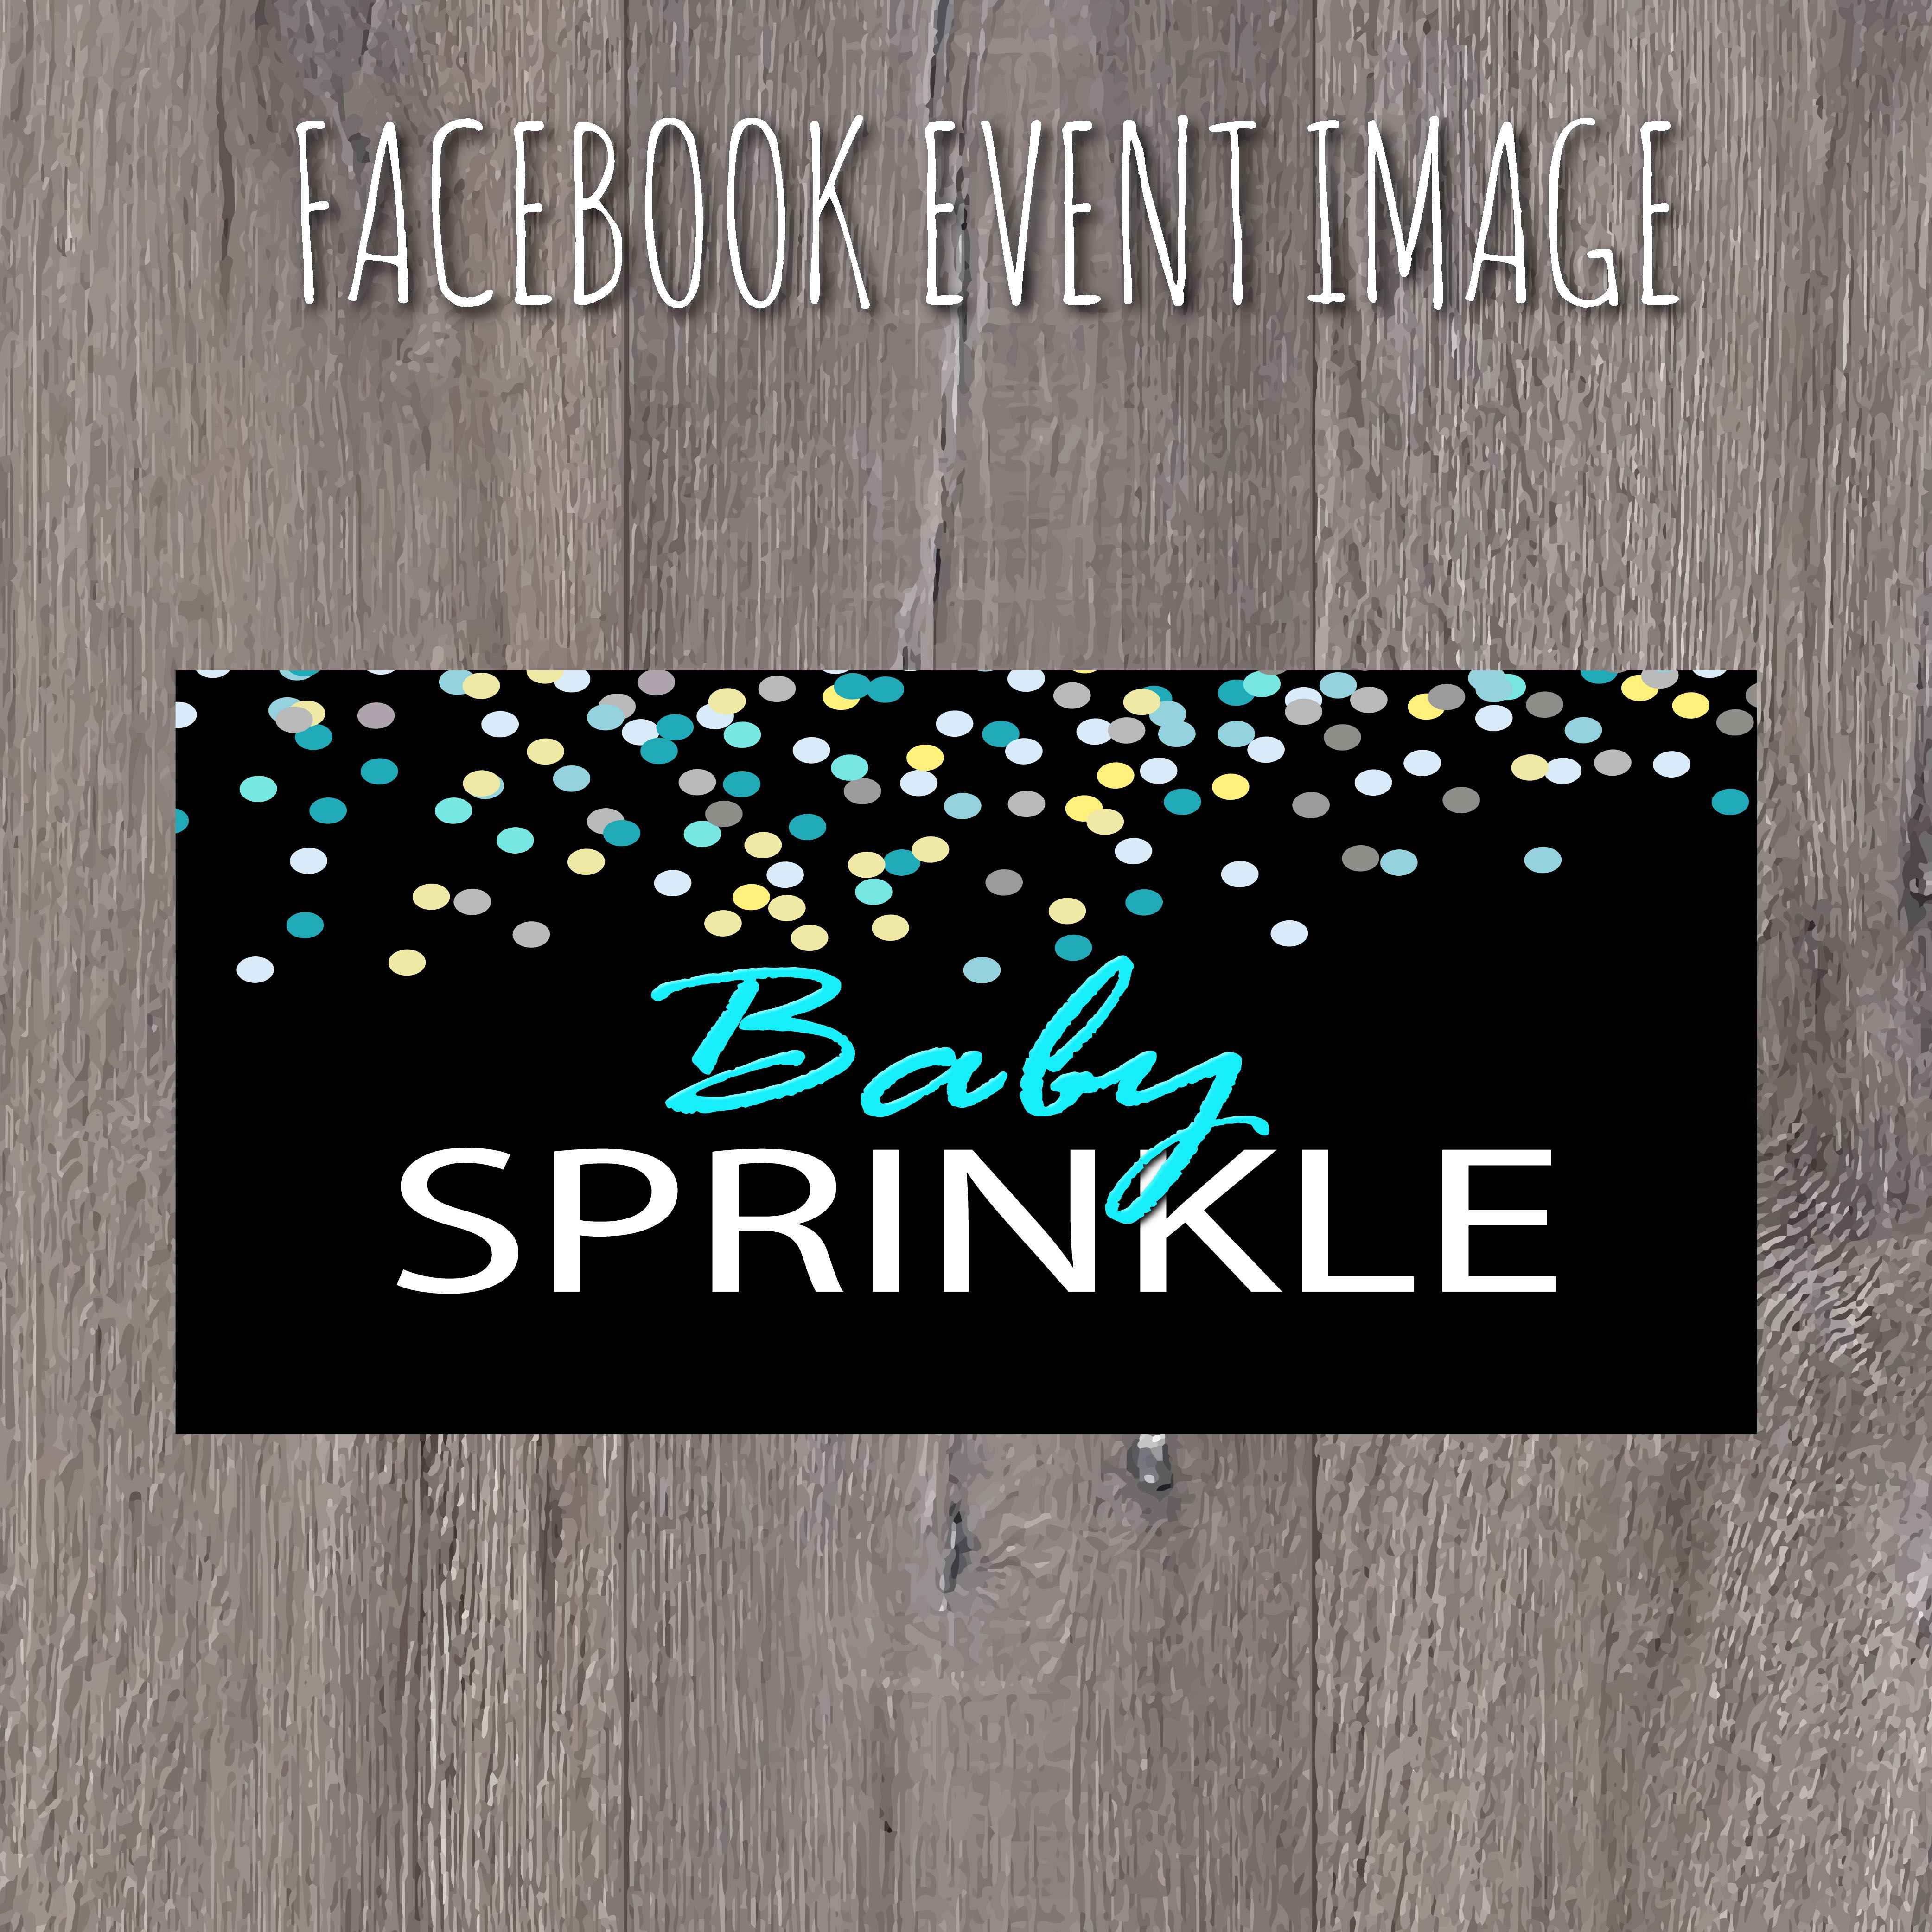 baby sprinkle facebook event image baby shower sprinkles sprinkle